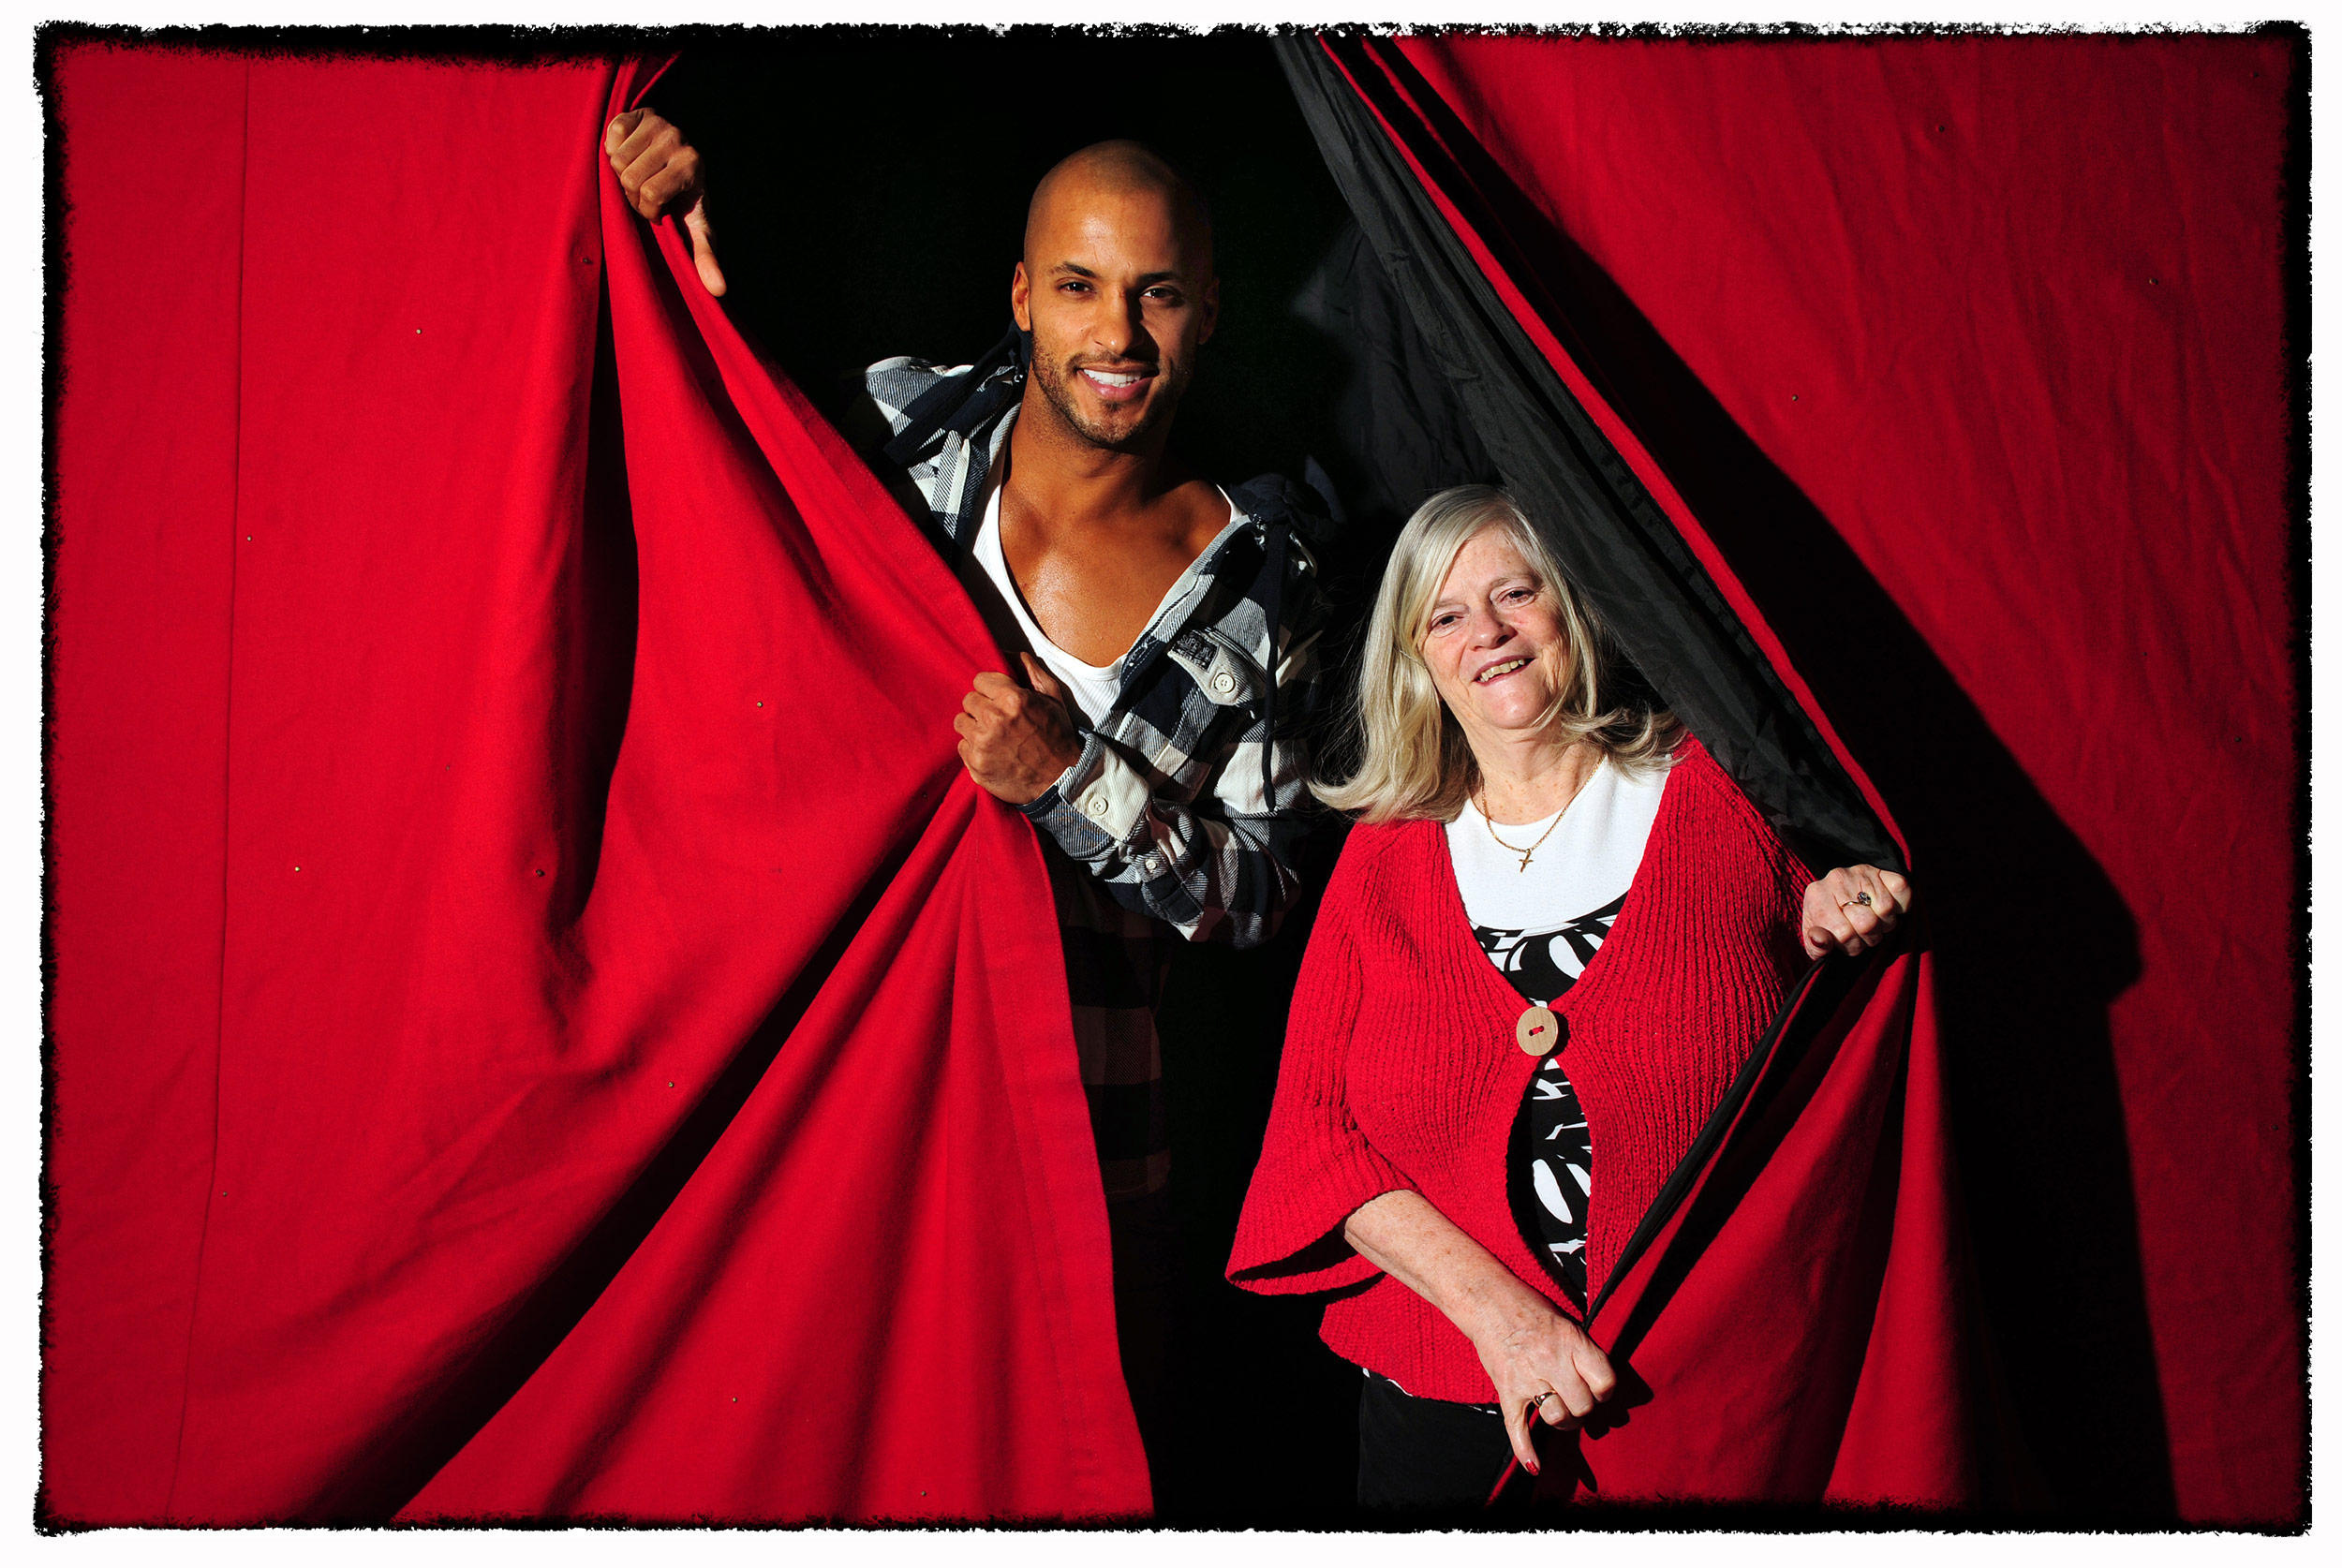 Two BBC TV stars poses for publicity photographs and peer through a curtain at Manchester's Arena.